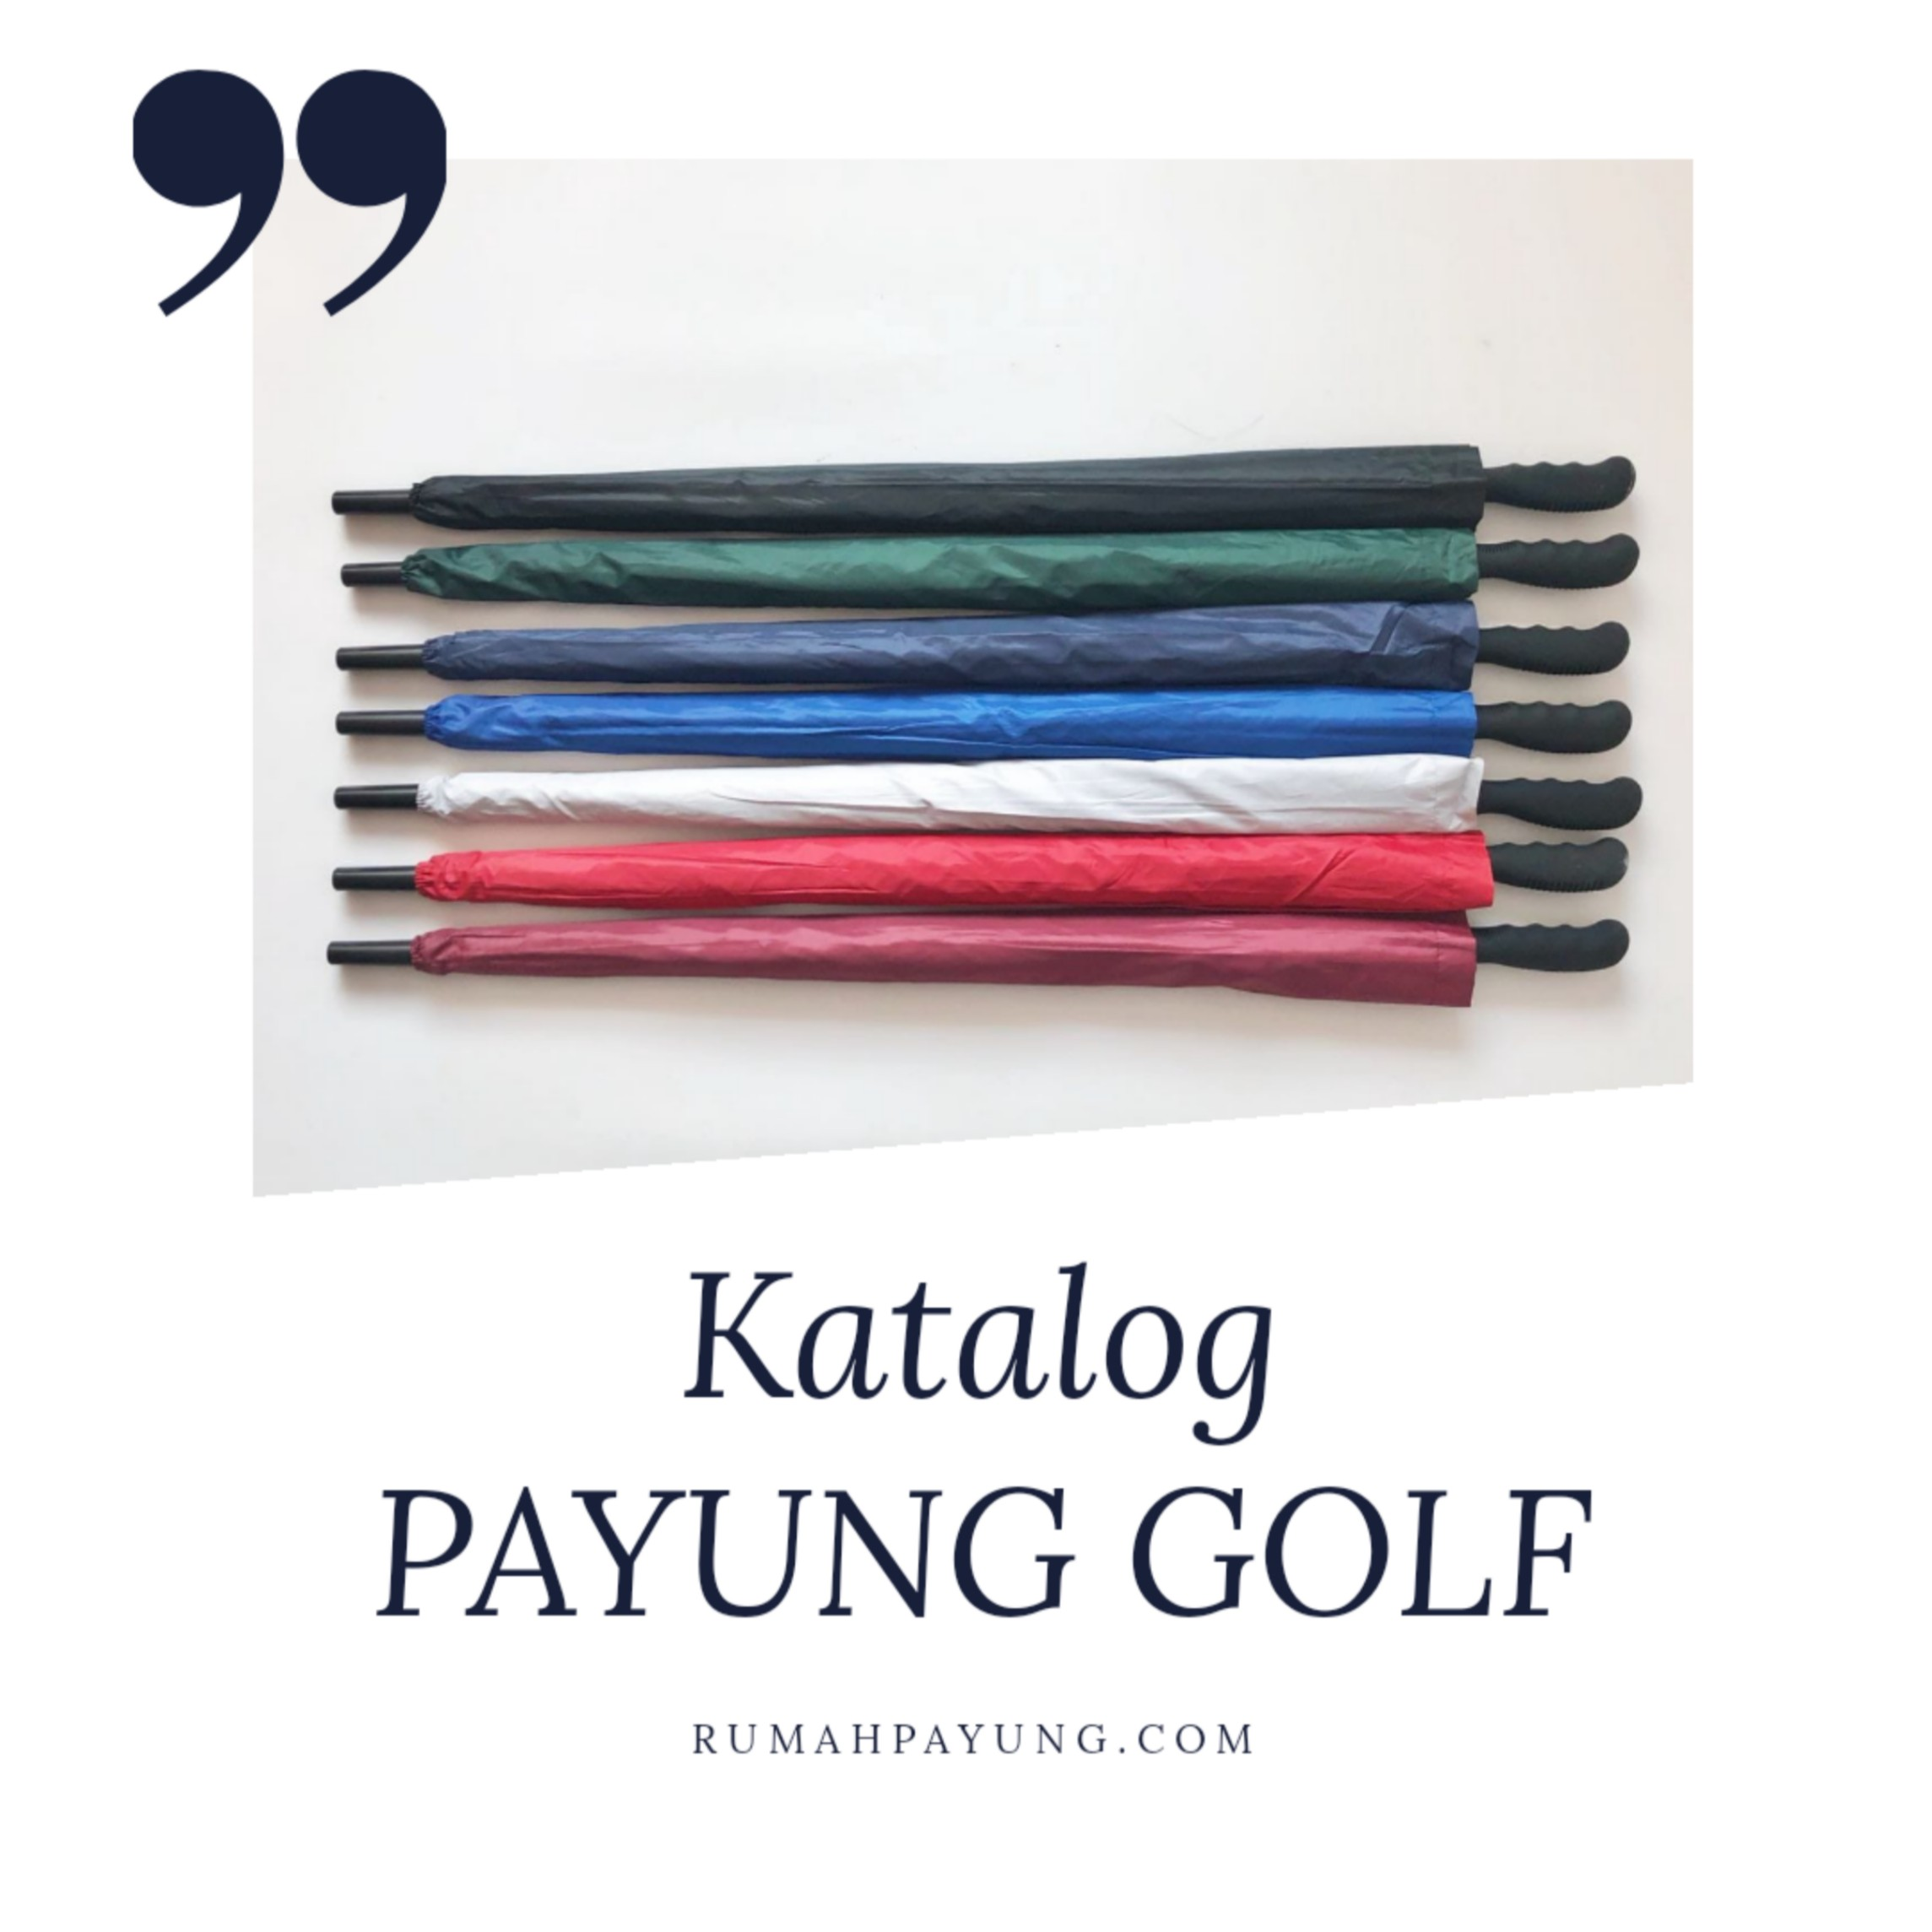 "Payung Golf Promosi Grosir<span class=""rating-result after_title mr-filter rating-result-1573"">	<span class=""mr-star-rating"">			    <i class=""fa fa-star mr-star-full""></i>	    	    <i class=""fa fa-star mr-star-full""></i>	    	    <i class=""fa fa-star mr-star-full""></i>	    	    <i class=""fa fa-star mr-star-full""></i>	    	    <i class=""fa fa-star mr-star-full""></i>	    </span><span class=""star-result"">	5/5</span>			<span class=""count"">				(4)			</span>			</span>"